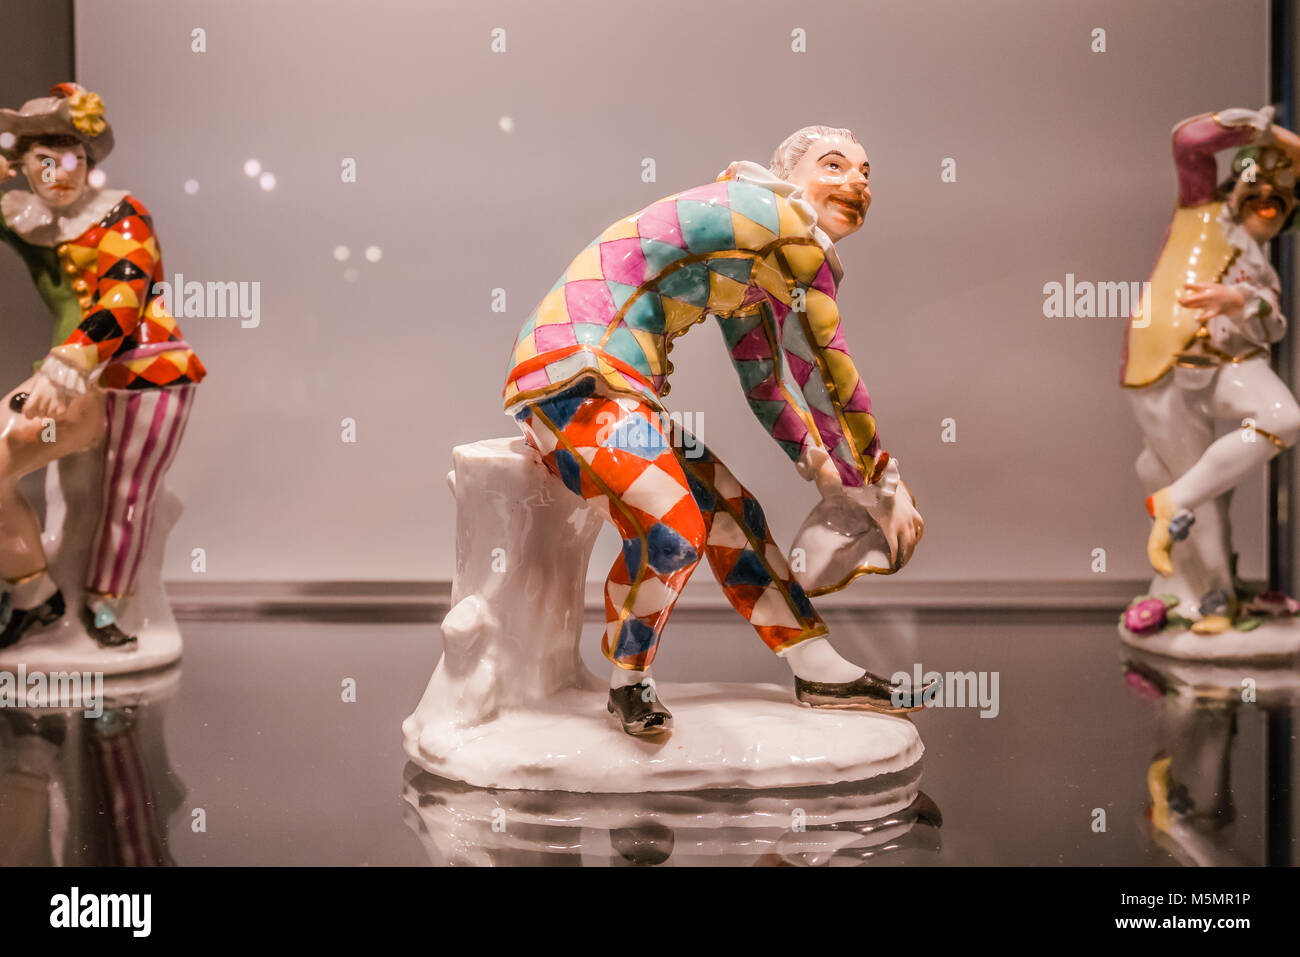 ceramic art figure scowling harlequin - Stock Image